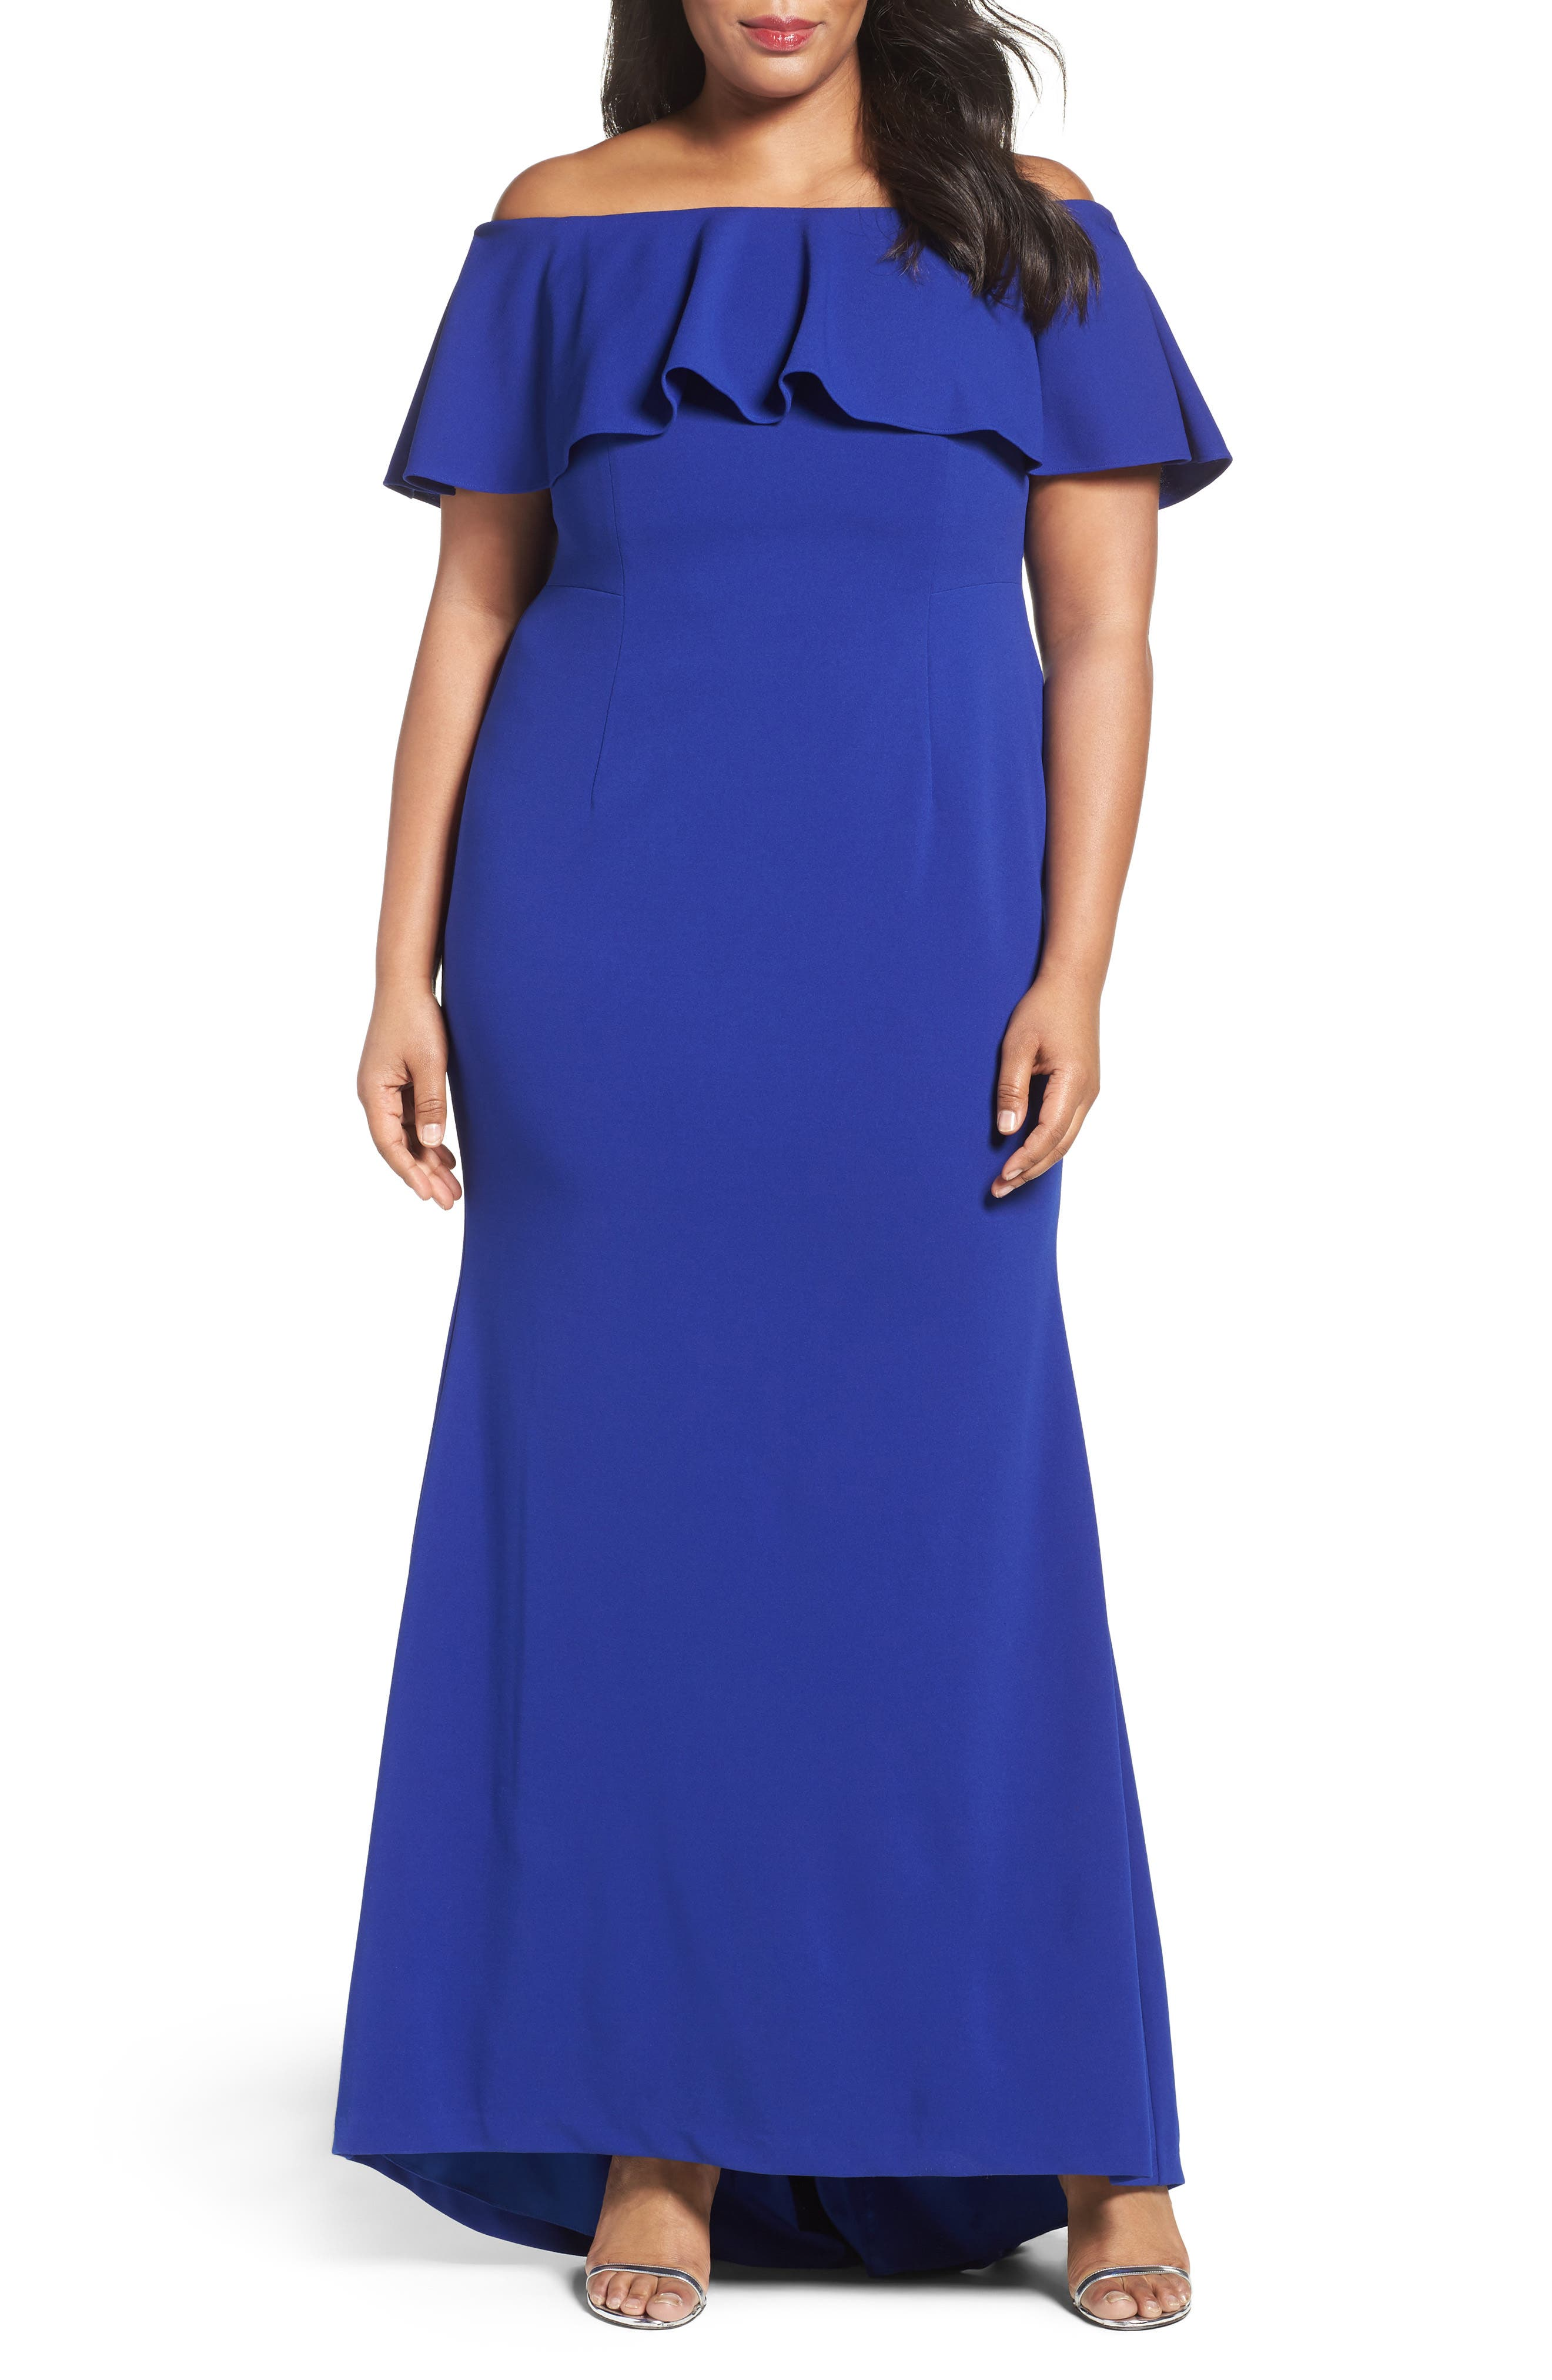 Adrianna Papell Off the Shoulder Crepe Knit Mermaid Gown (Plus Size)